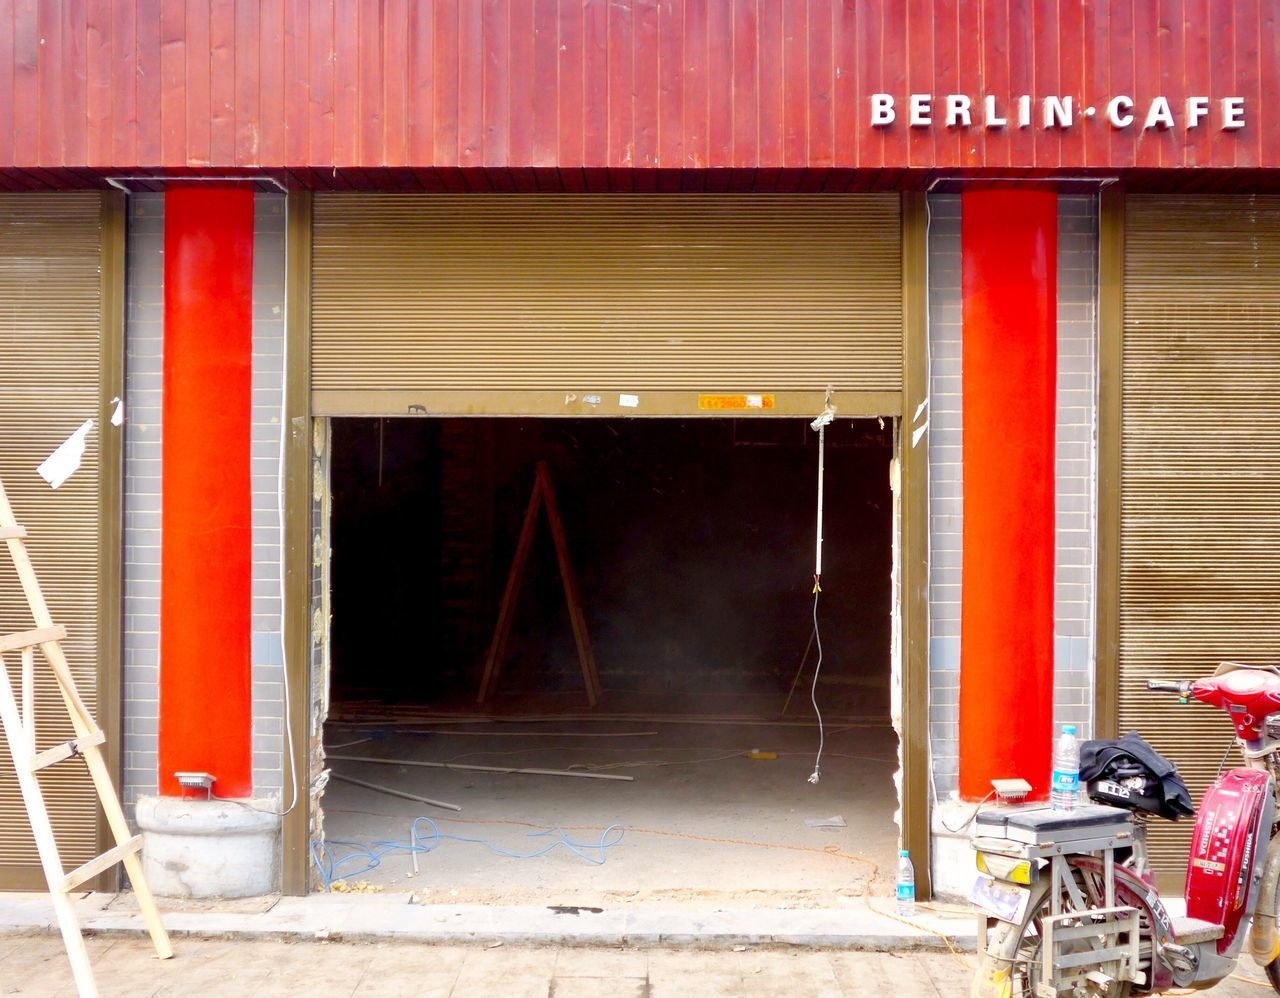 Built Structure Architecture Red Building Exterior Berlin In China China Cafe China Streets China Photos China Germany In China Day Industry Outdoors No People Berliner Ansichten Building Sites Building Site In China New Store